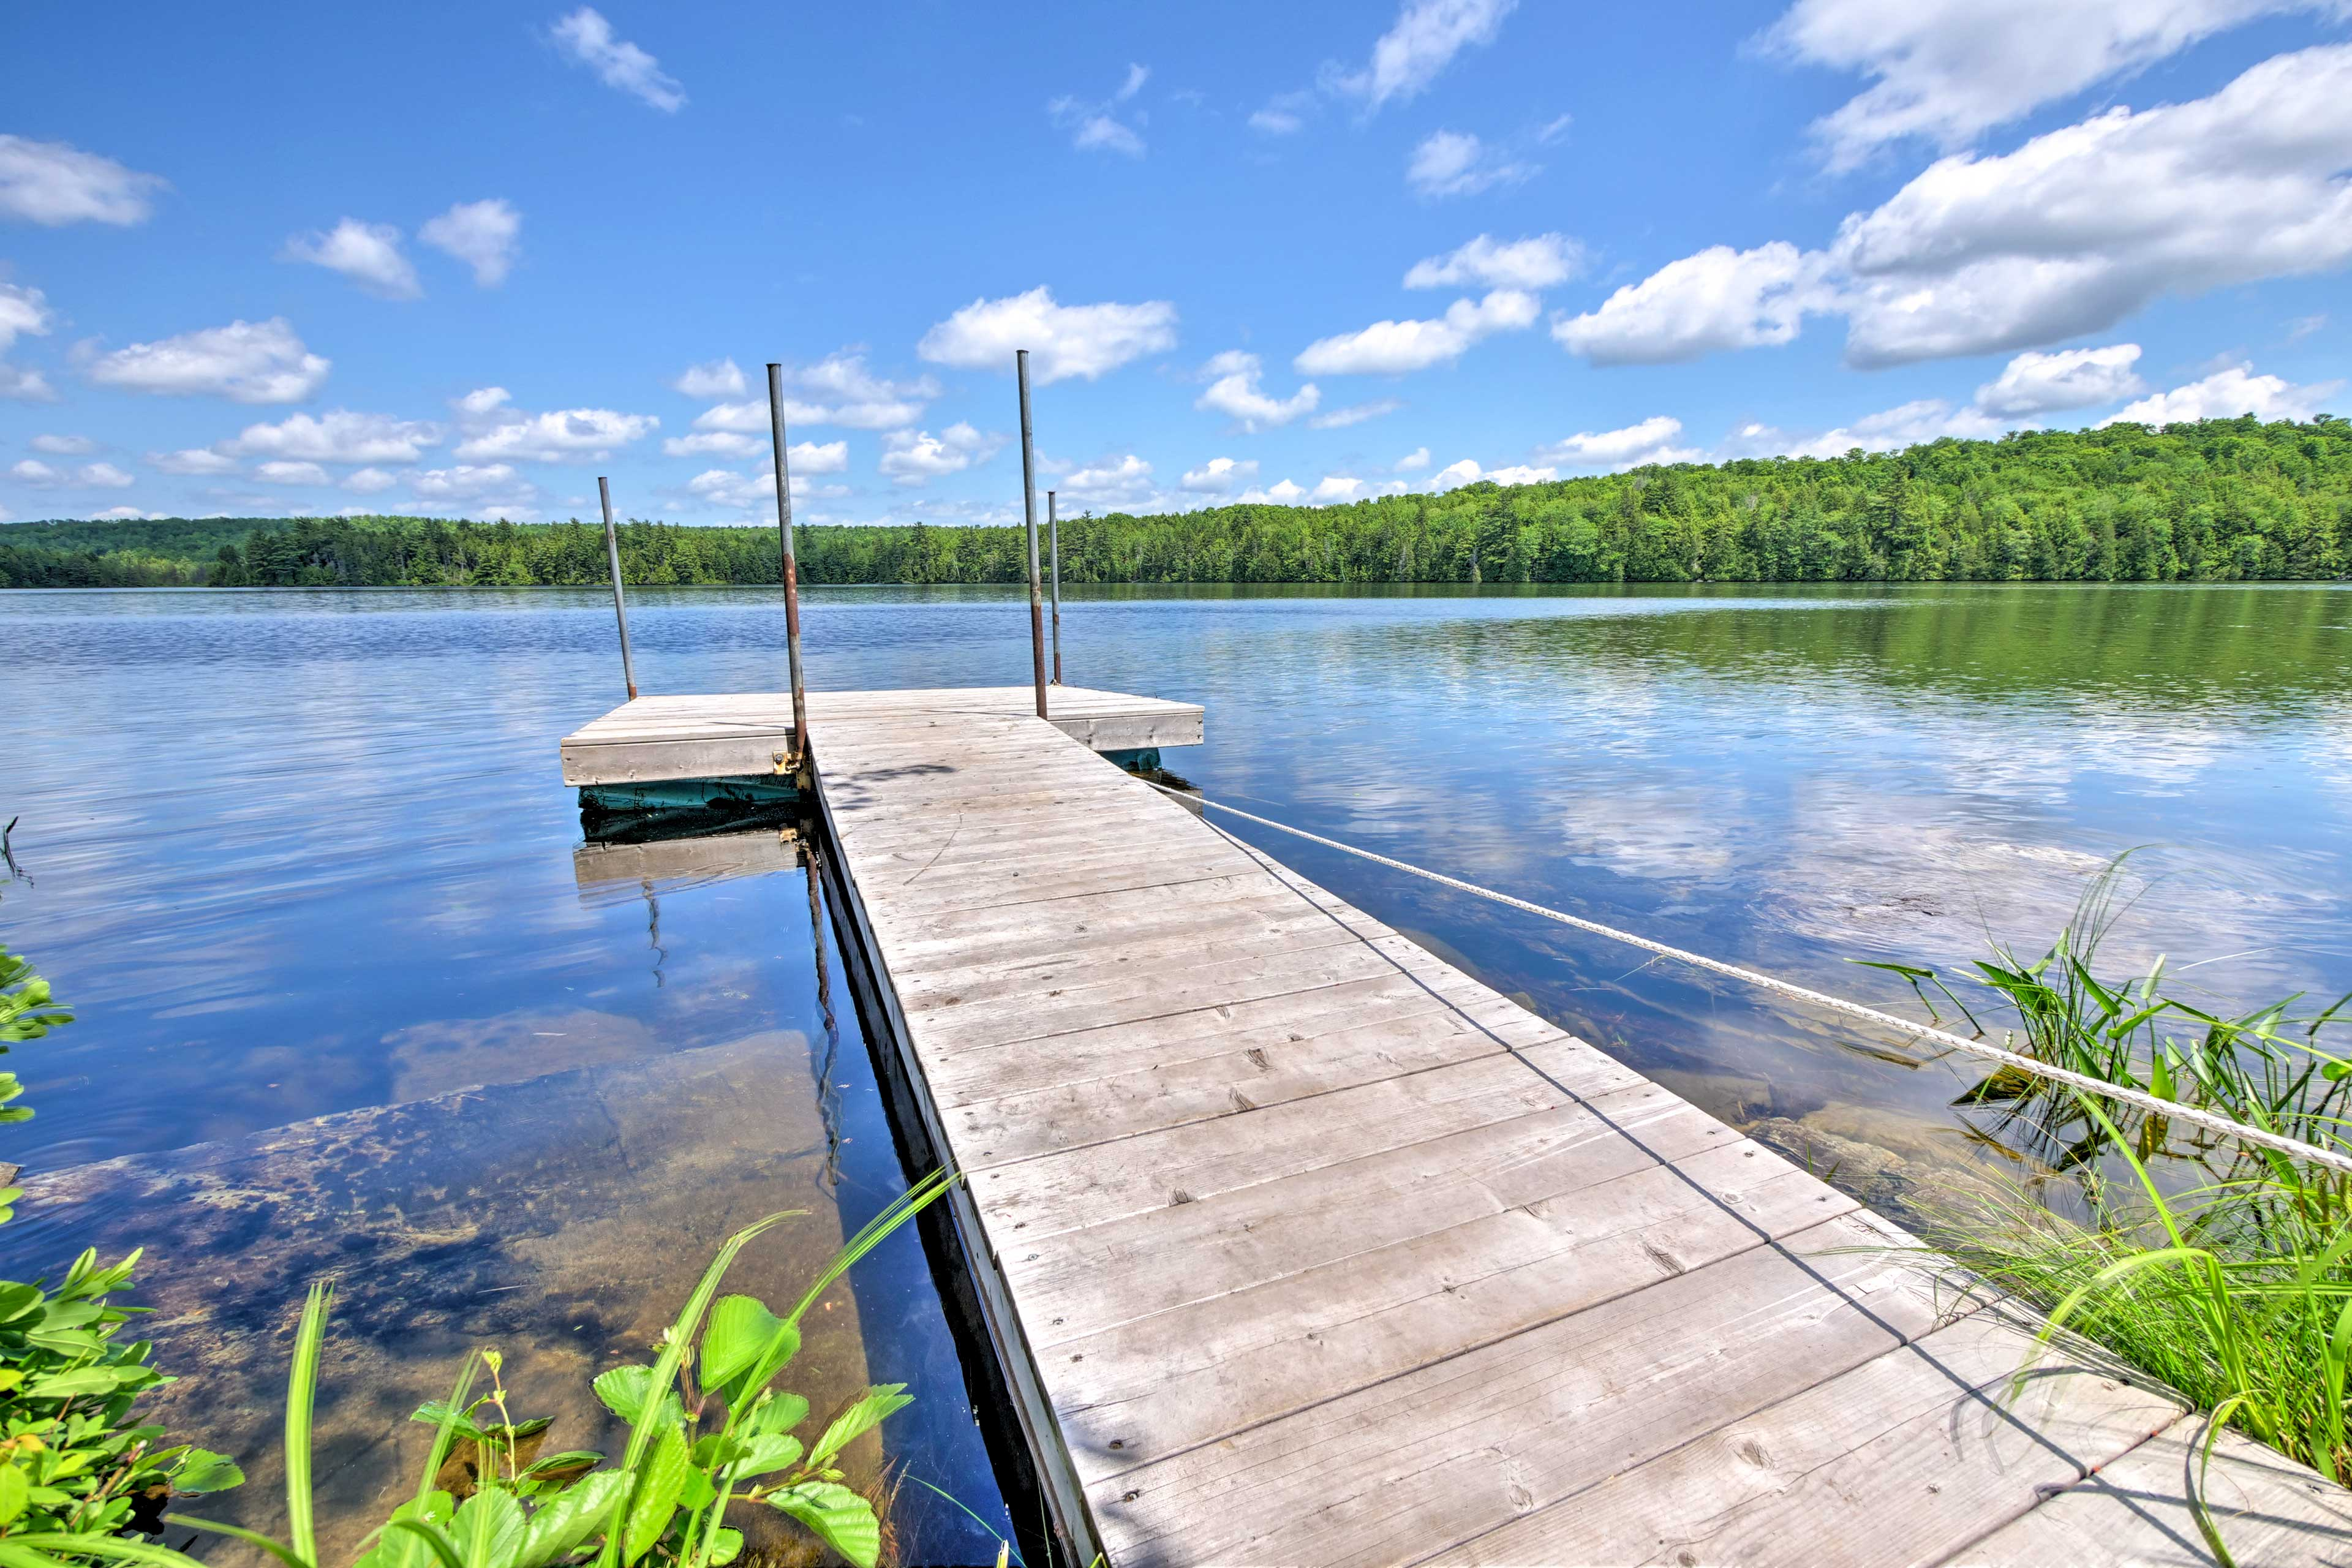 Tie your boat up and swim in the crystal clear waters from the dock.